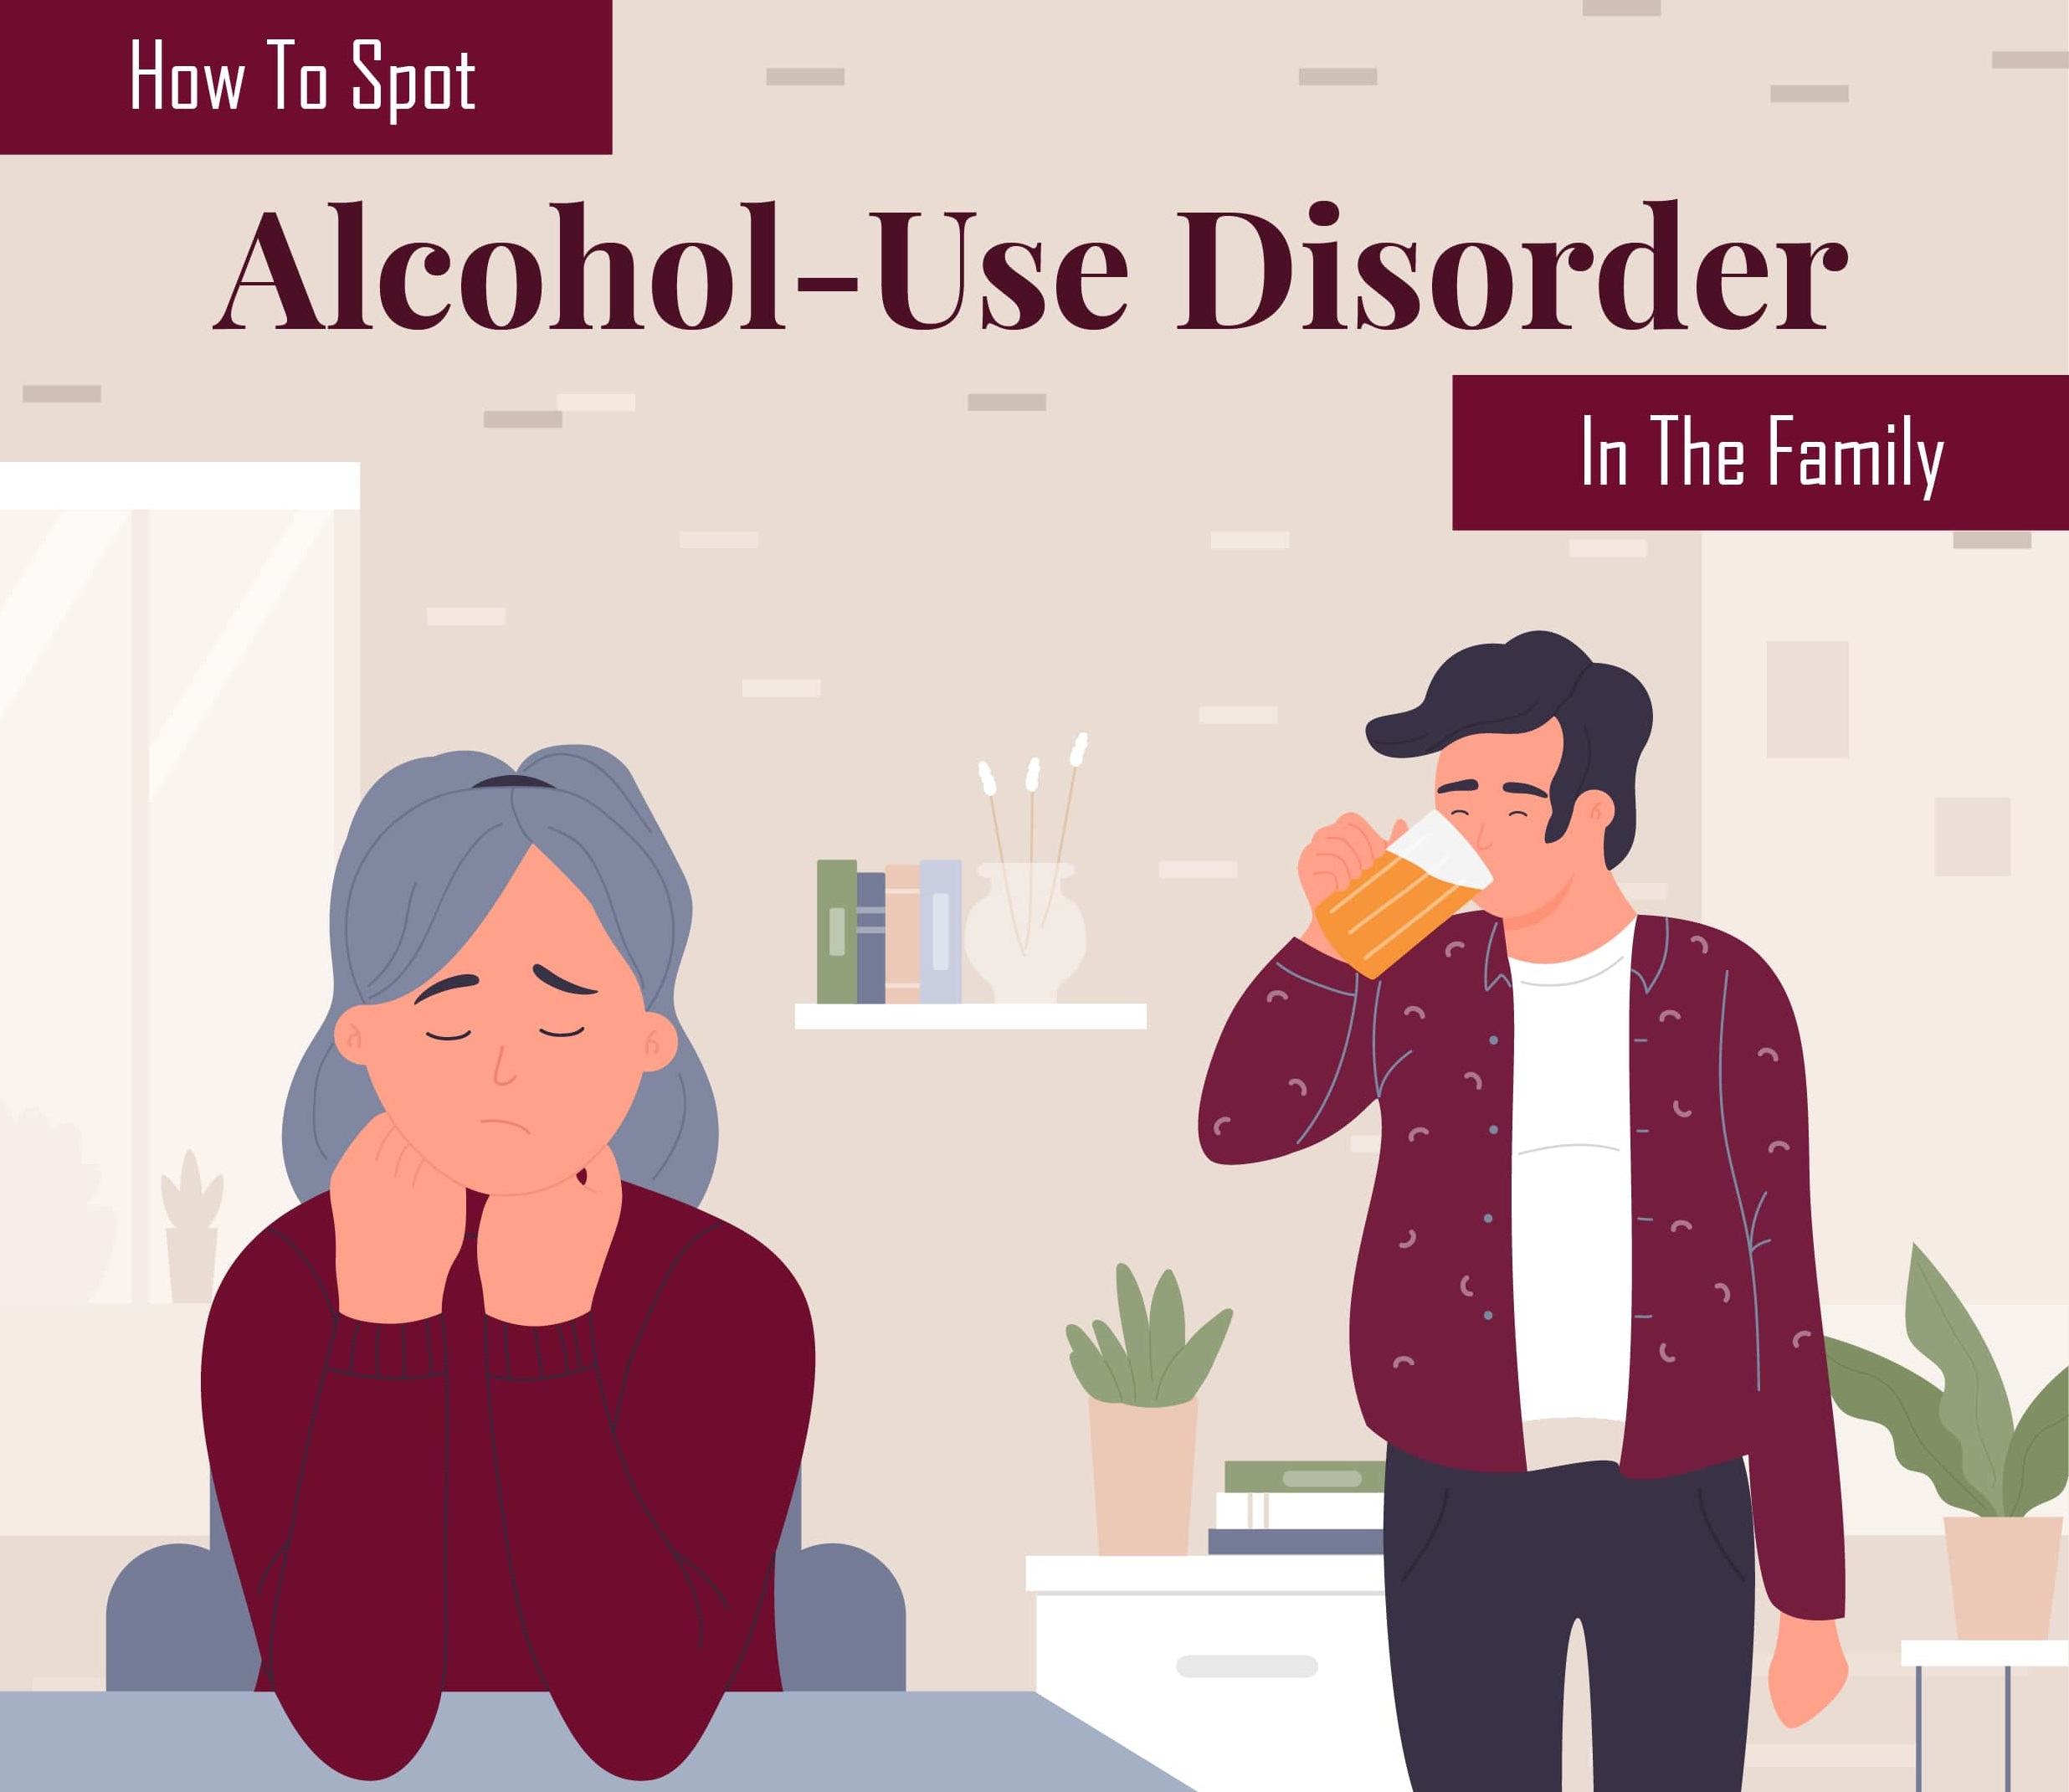 How to Spot Alcohol-Use Disorder In the Family